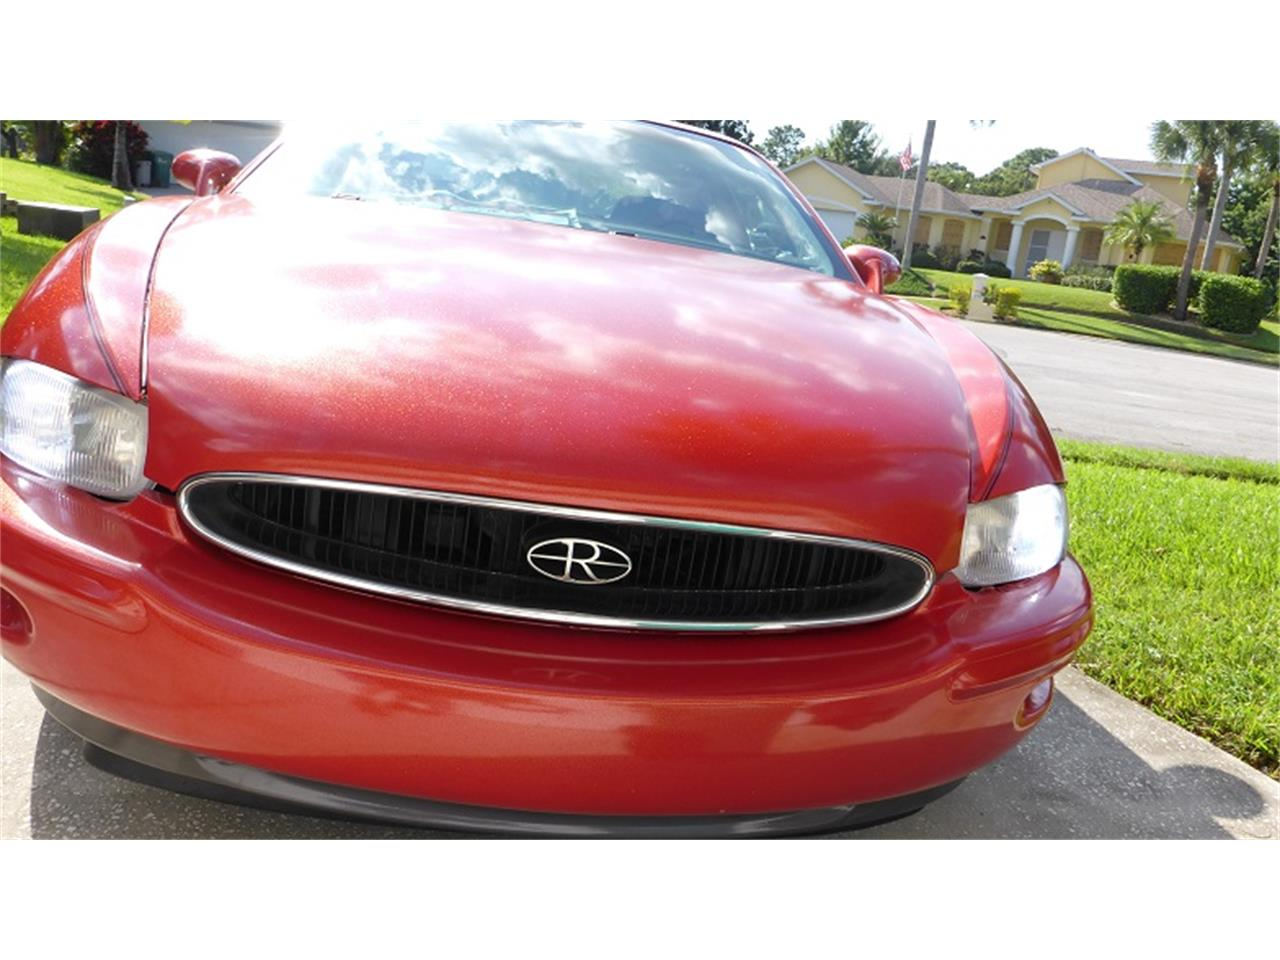 1999 Buick Riviera (CC-1262038) for sale in Plantation, Florida